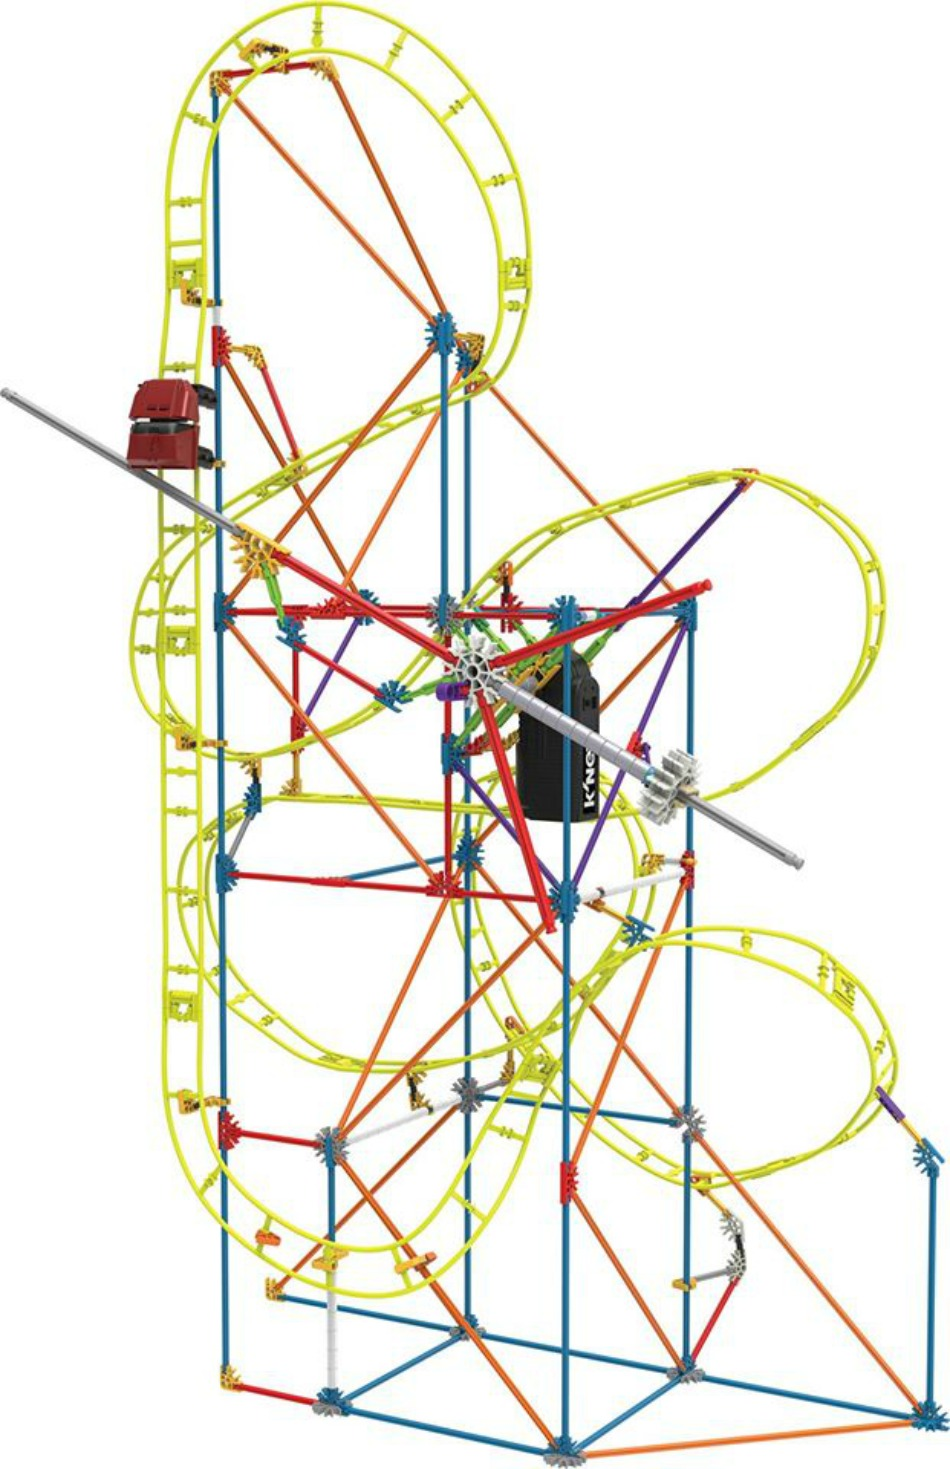 knex-clock-work-roller-coaster-build-set-1